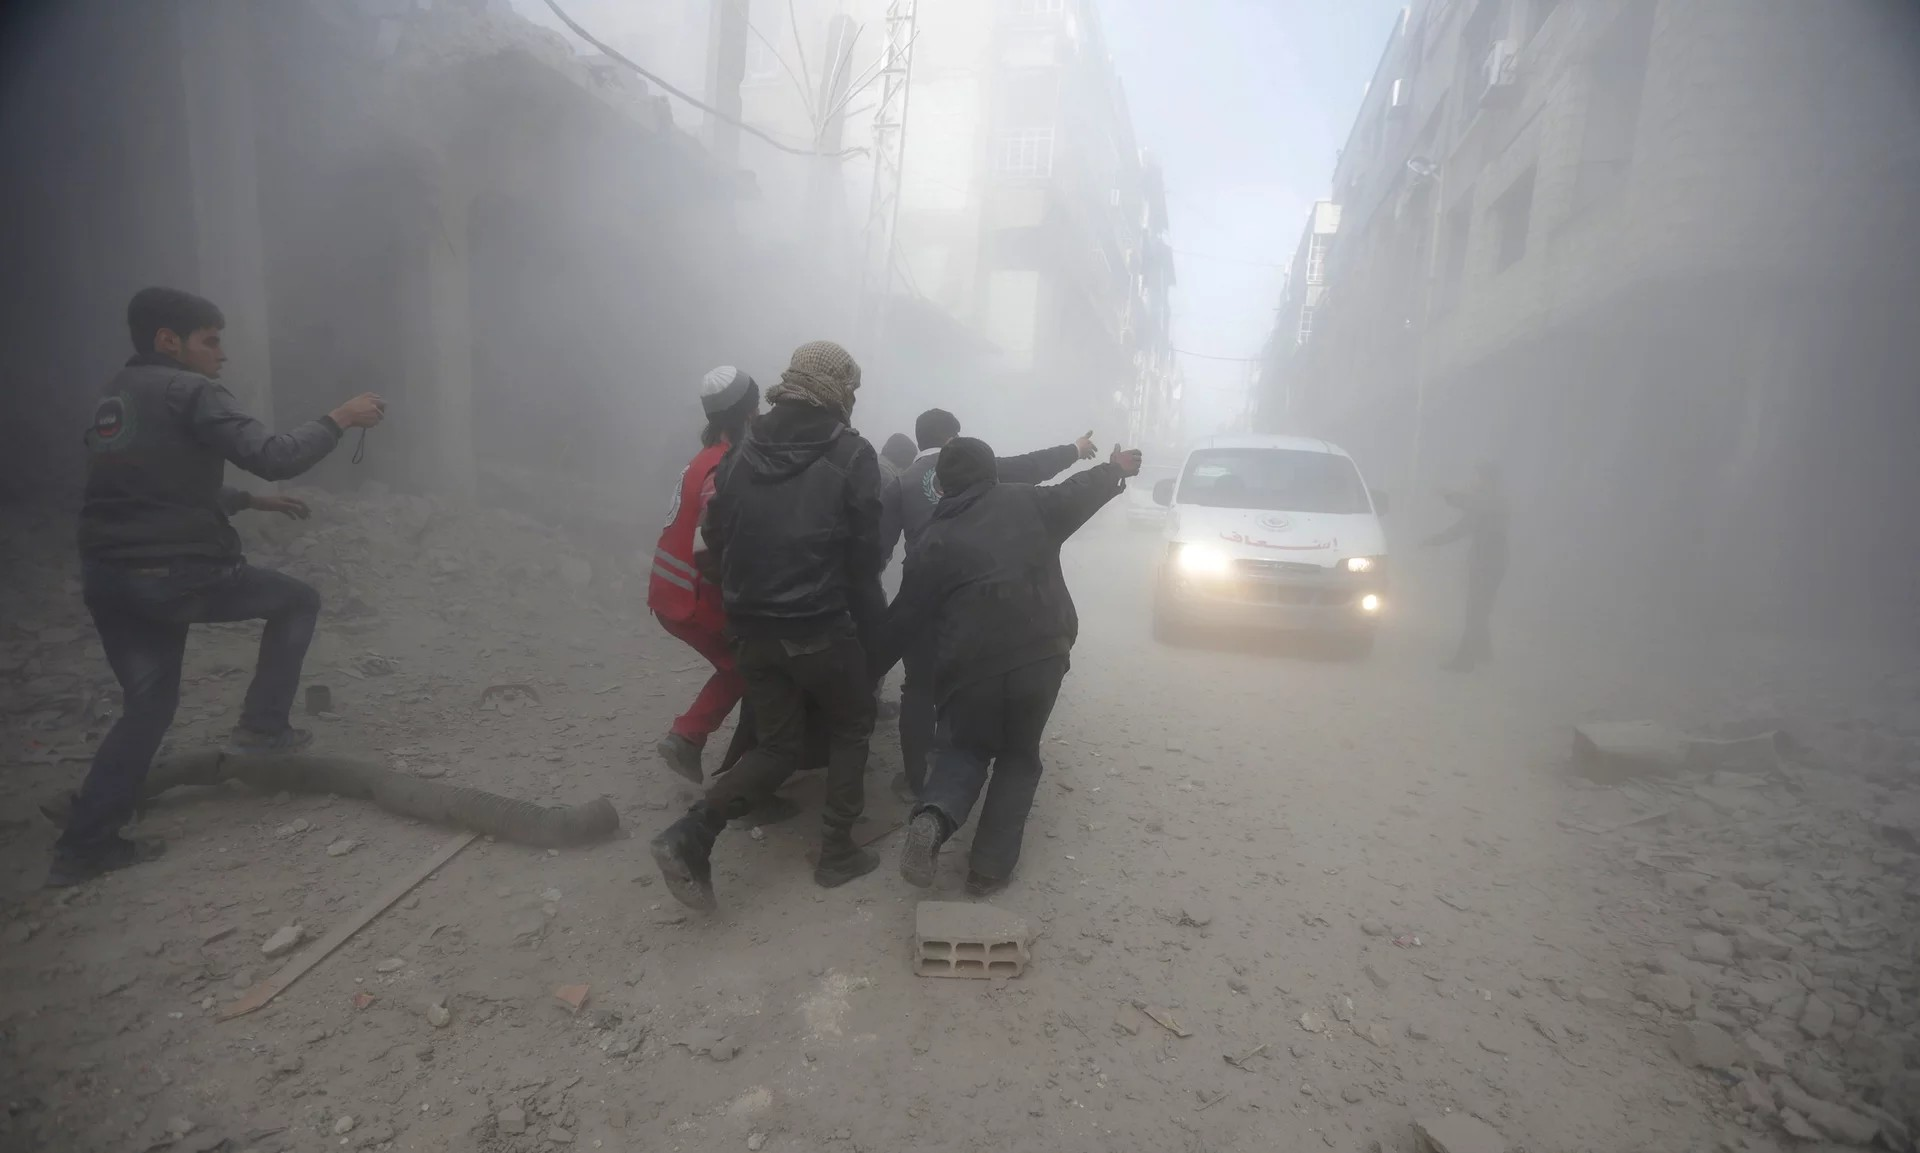 Residents and a member of the Syrian Red Crescent carry an injured man, after an air-strike in eastern Ghouta. The ICRC explains to warring parties practical ways to reduce civilian deaths. ©Bassam Khabieh/Reuters